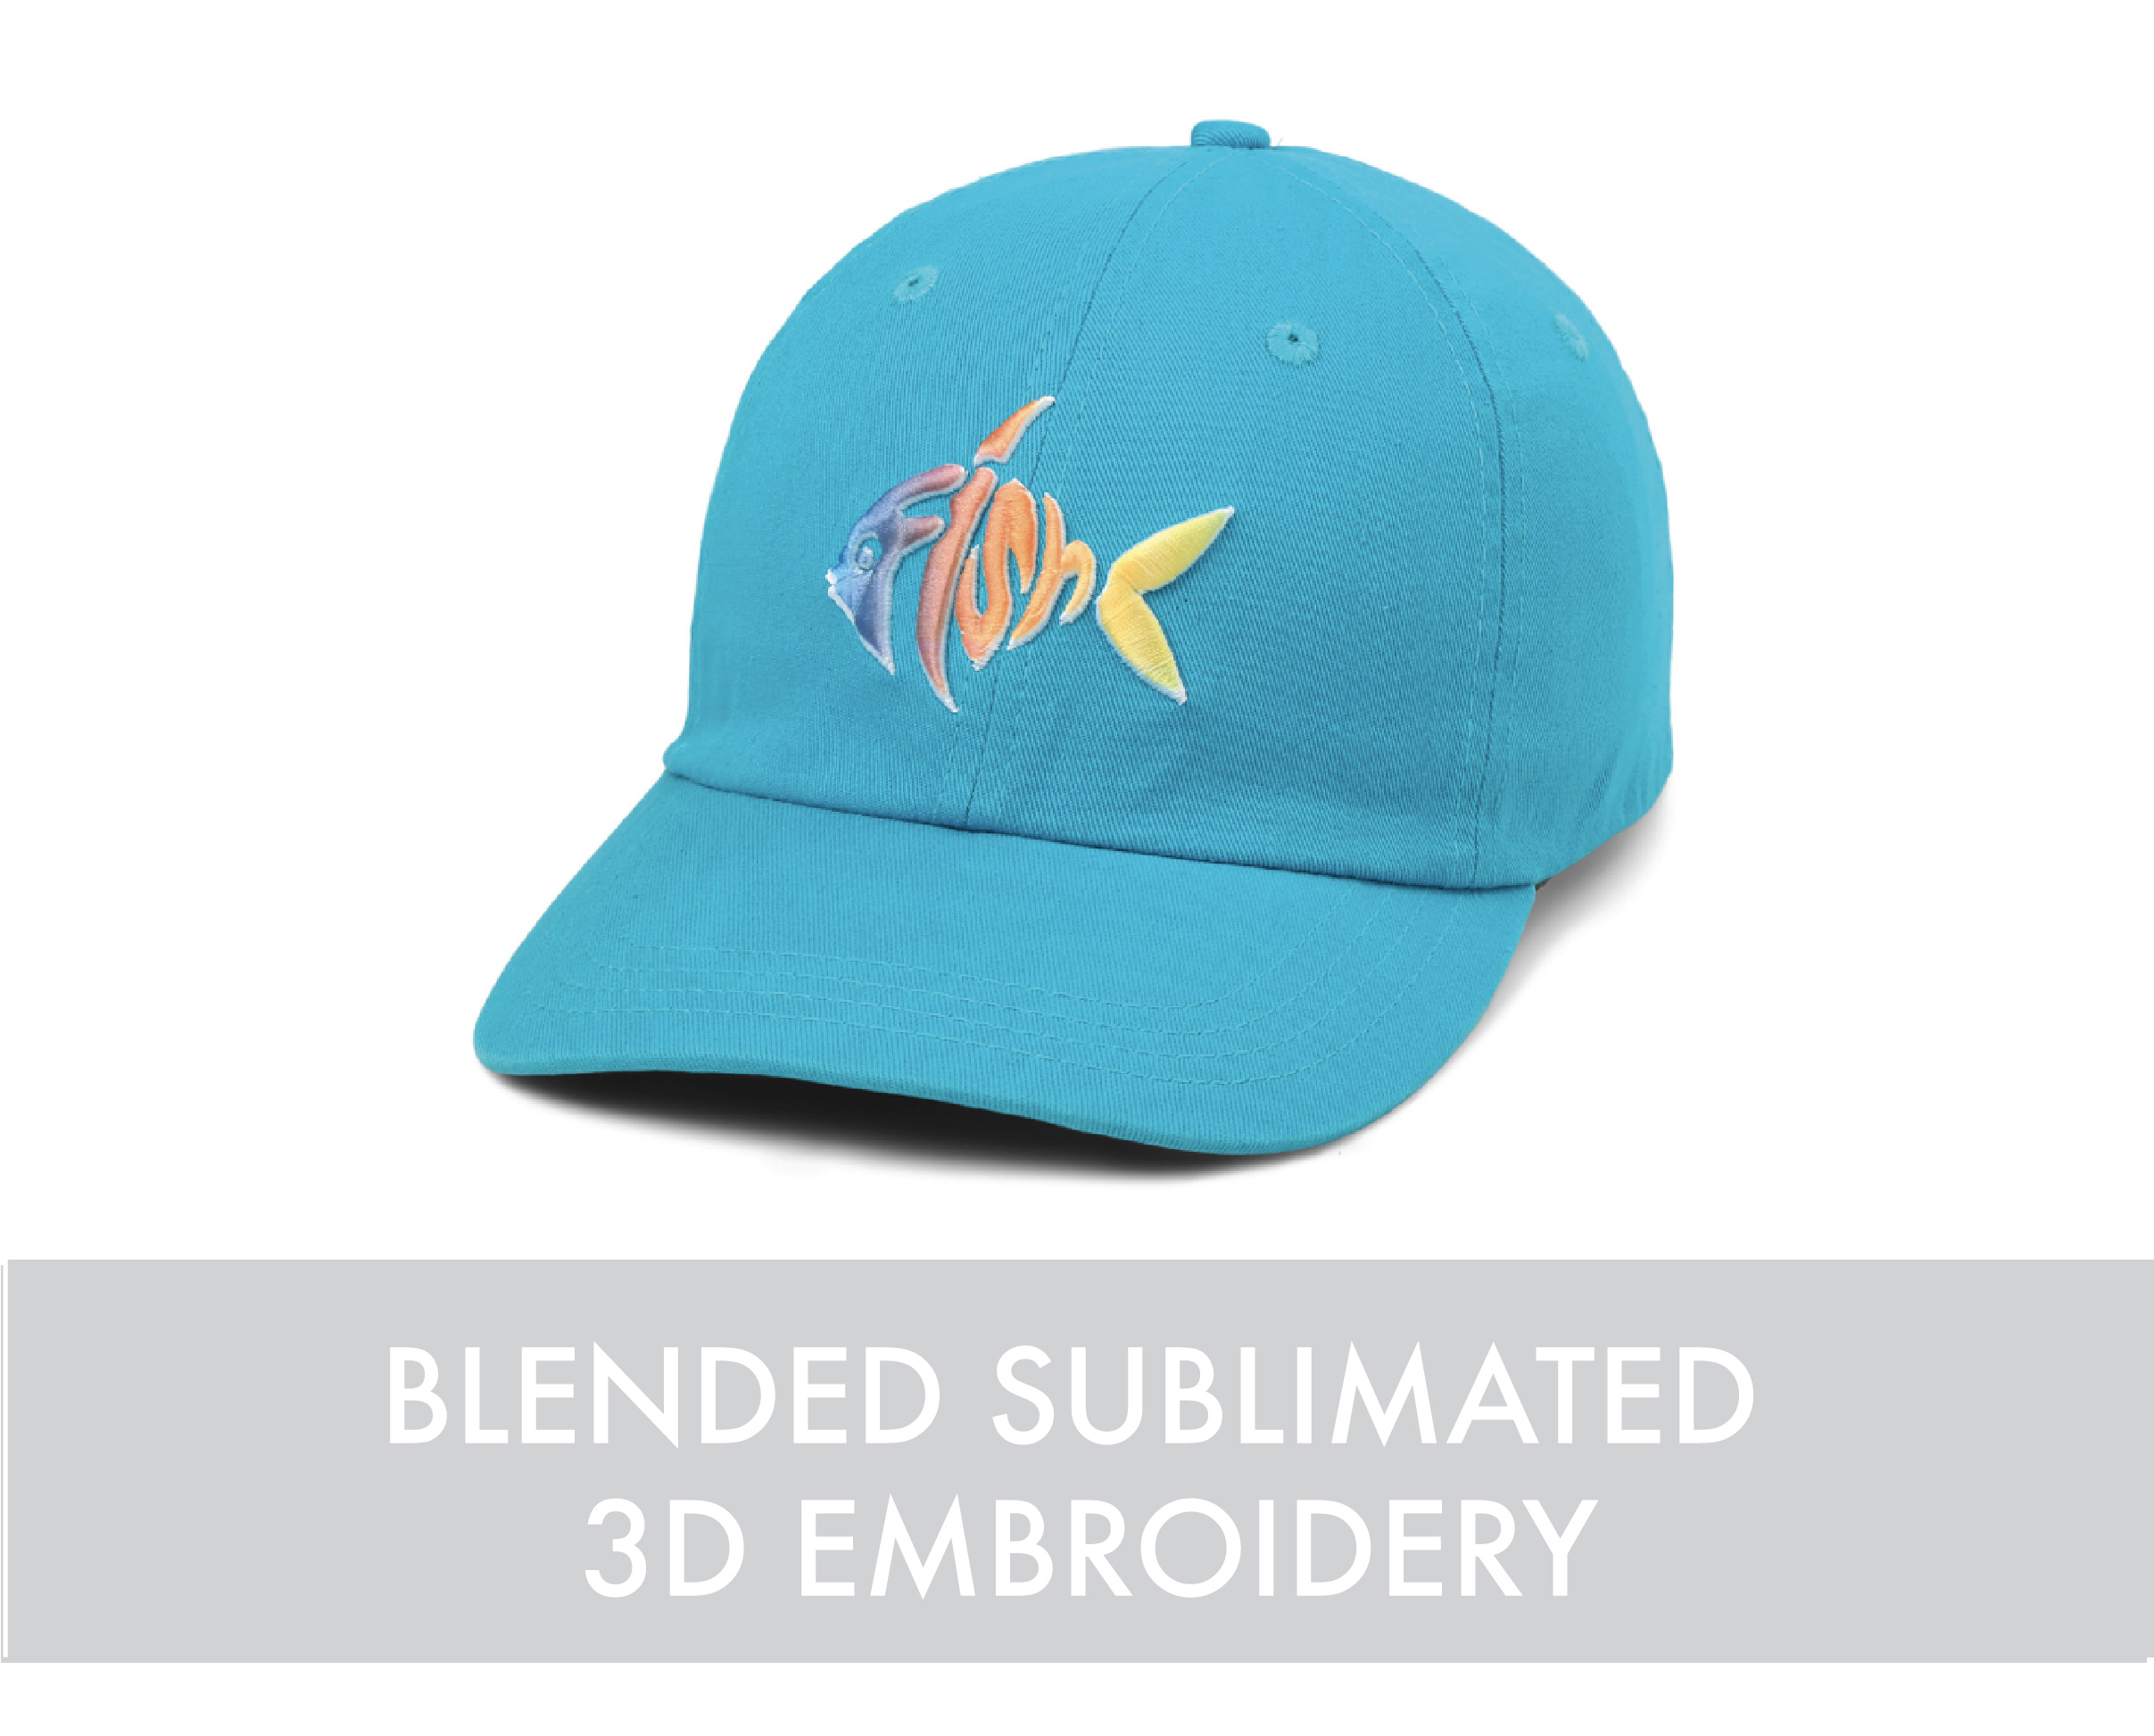 Blended sublimated 3d embroidery